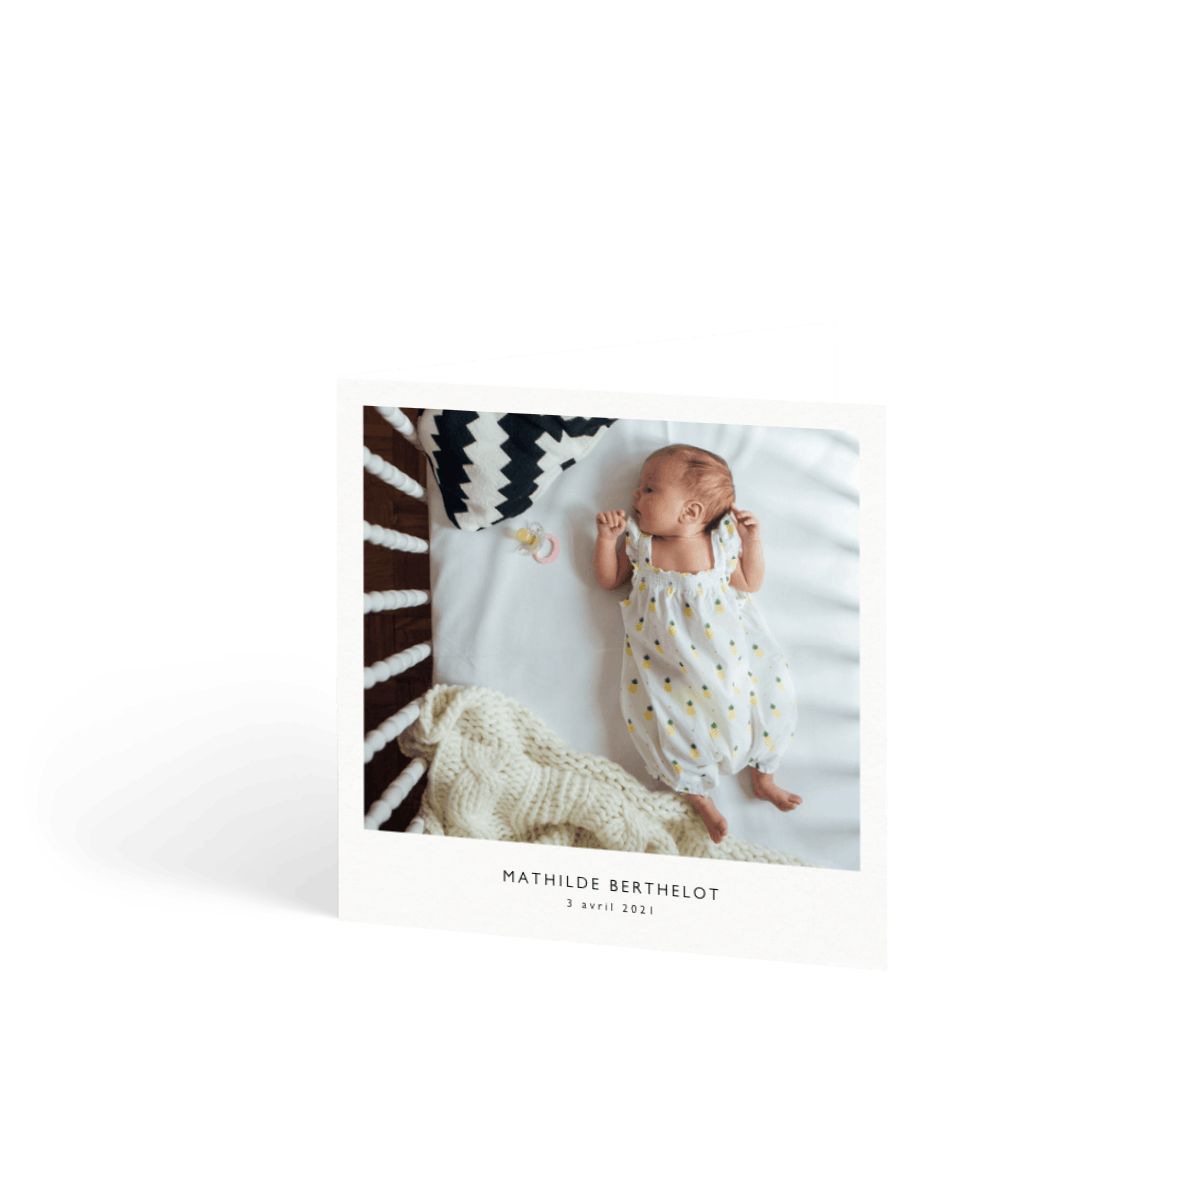 Https%3a%2f%2fwww.papier.com%2fproduct image%2f71018%2f16%2fbaby photo frame 16757 avant 1565271965.png?ixlib=rb 1.1